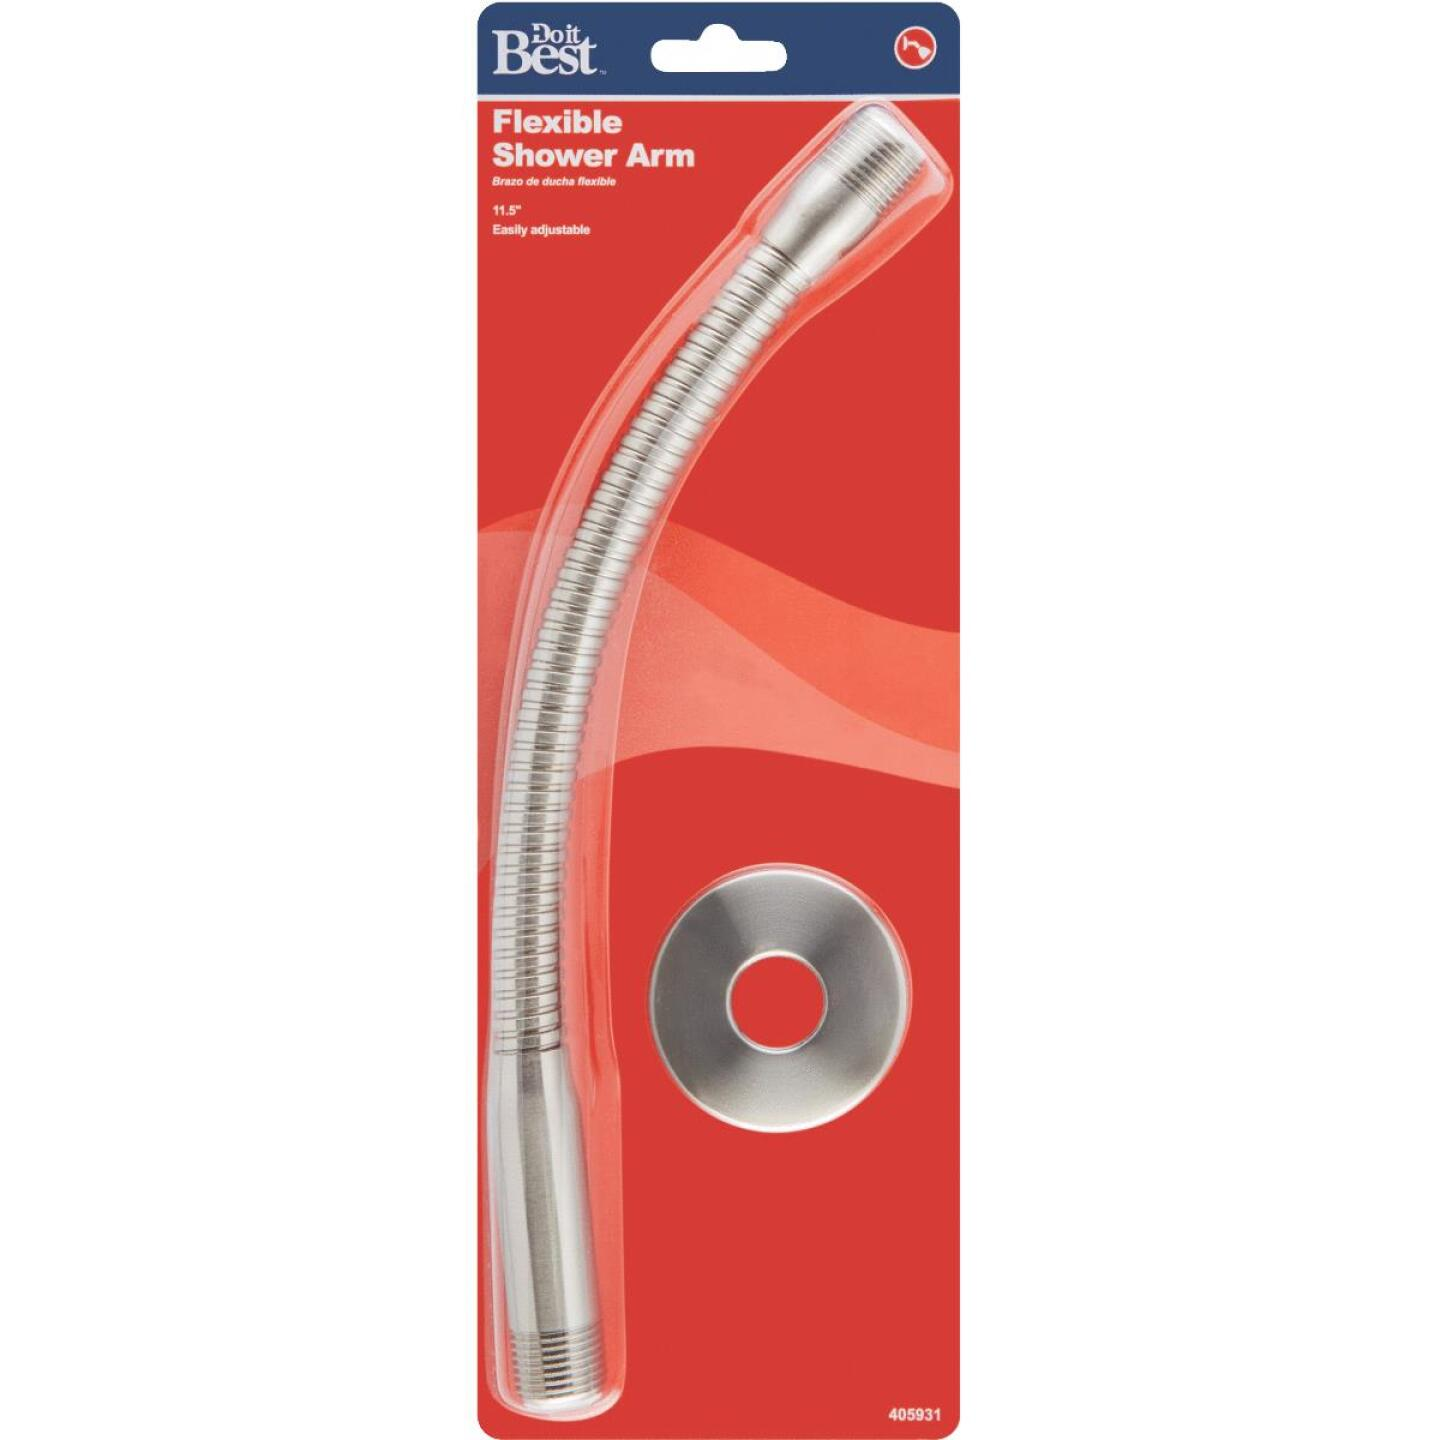 Do it Best 11-1/2 In. Brushed Nickel Flexible Shower Arm with Flange Image 2